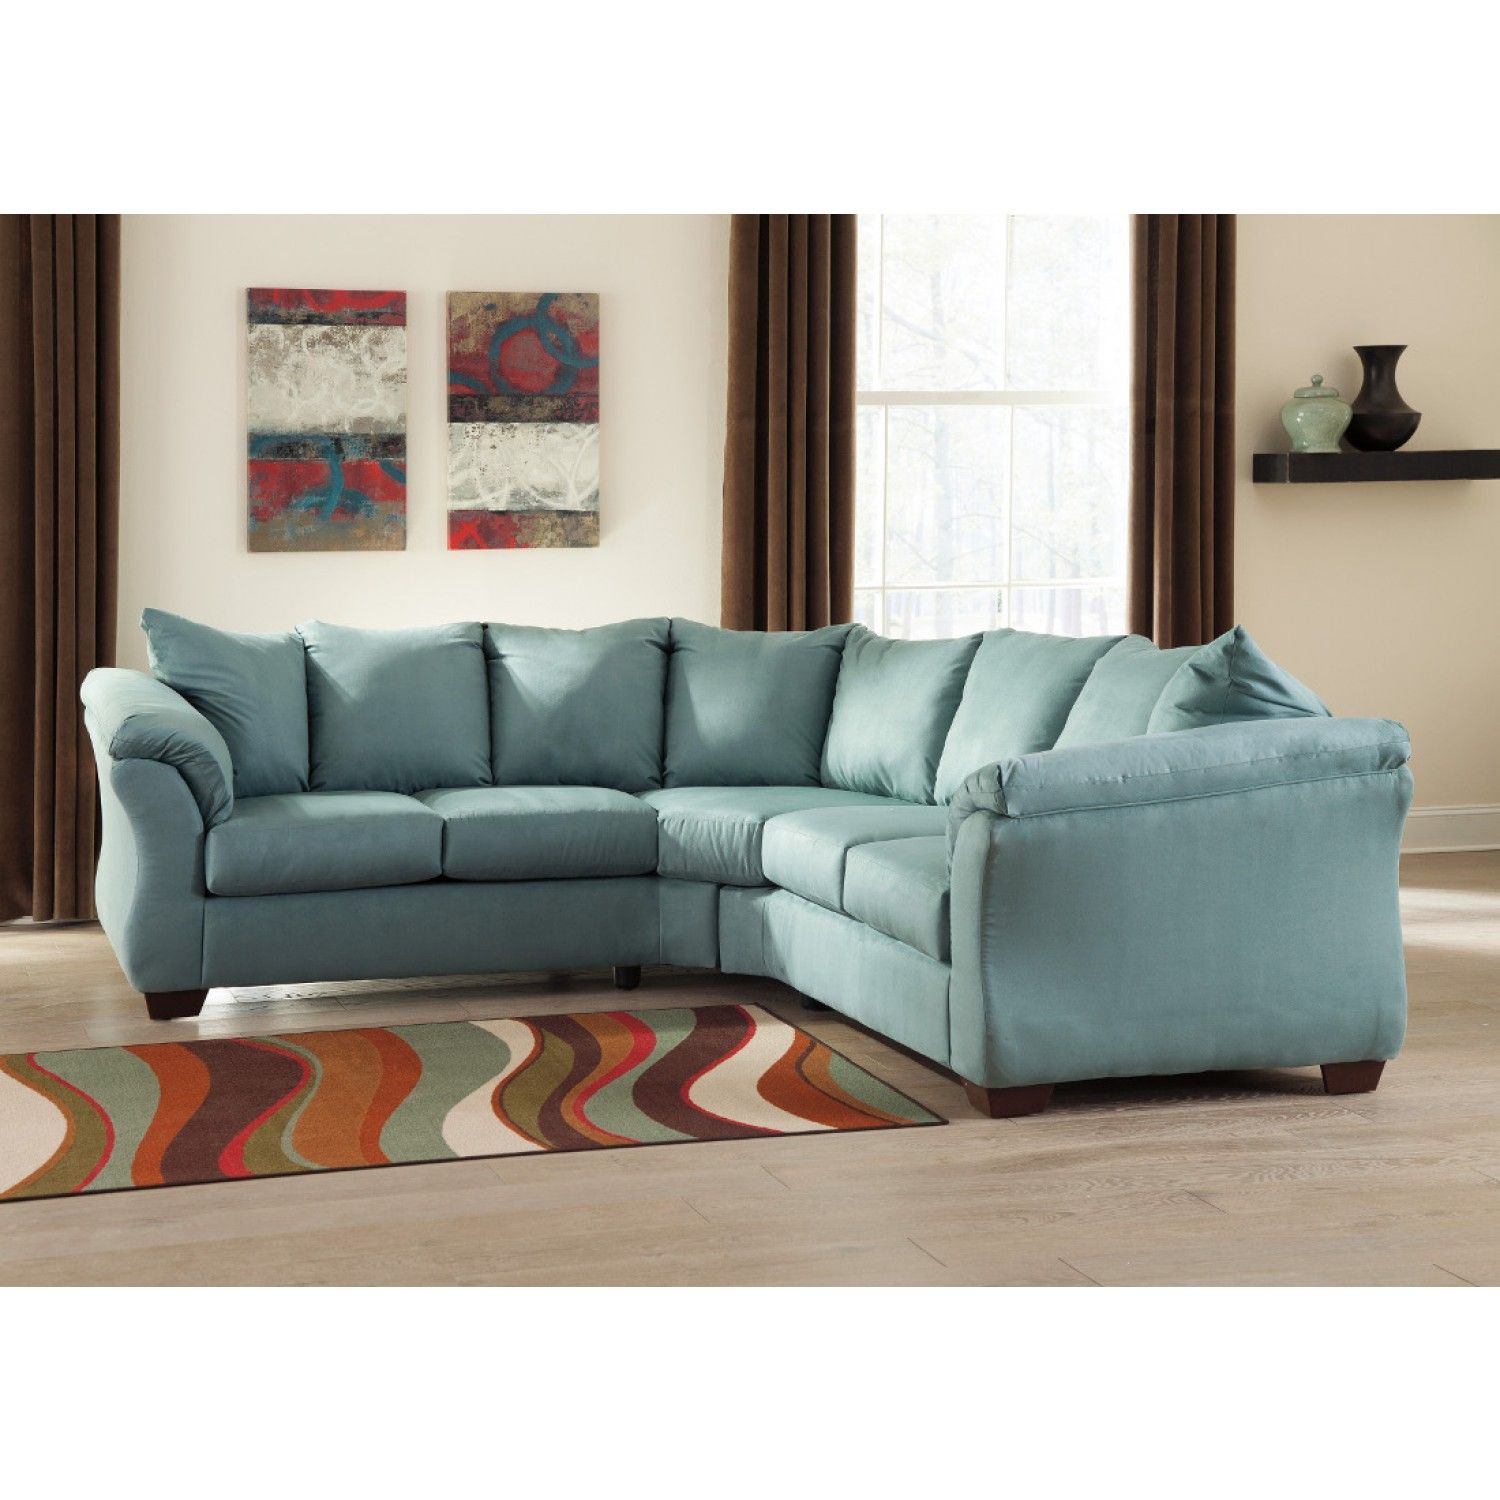 Ashley furniture darcy sectional in sky